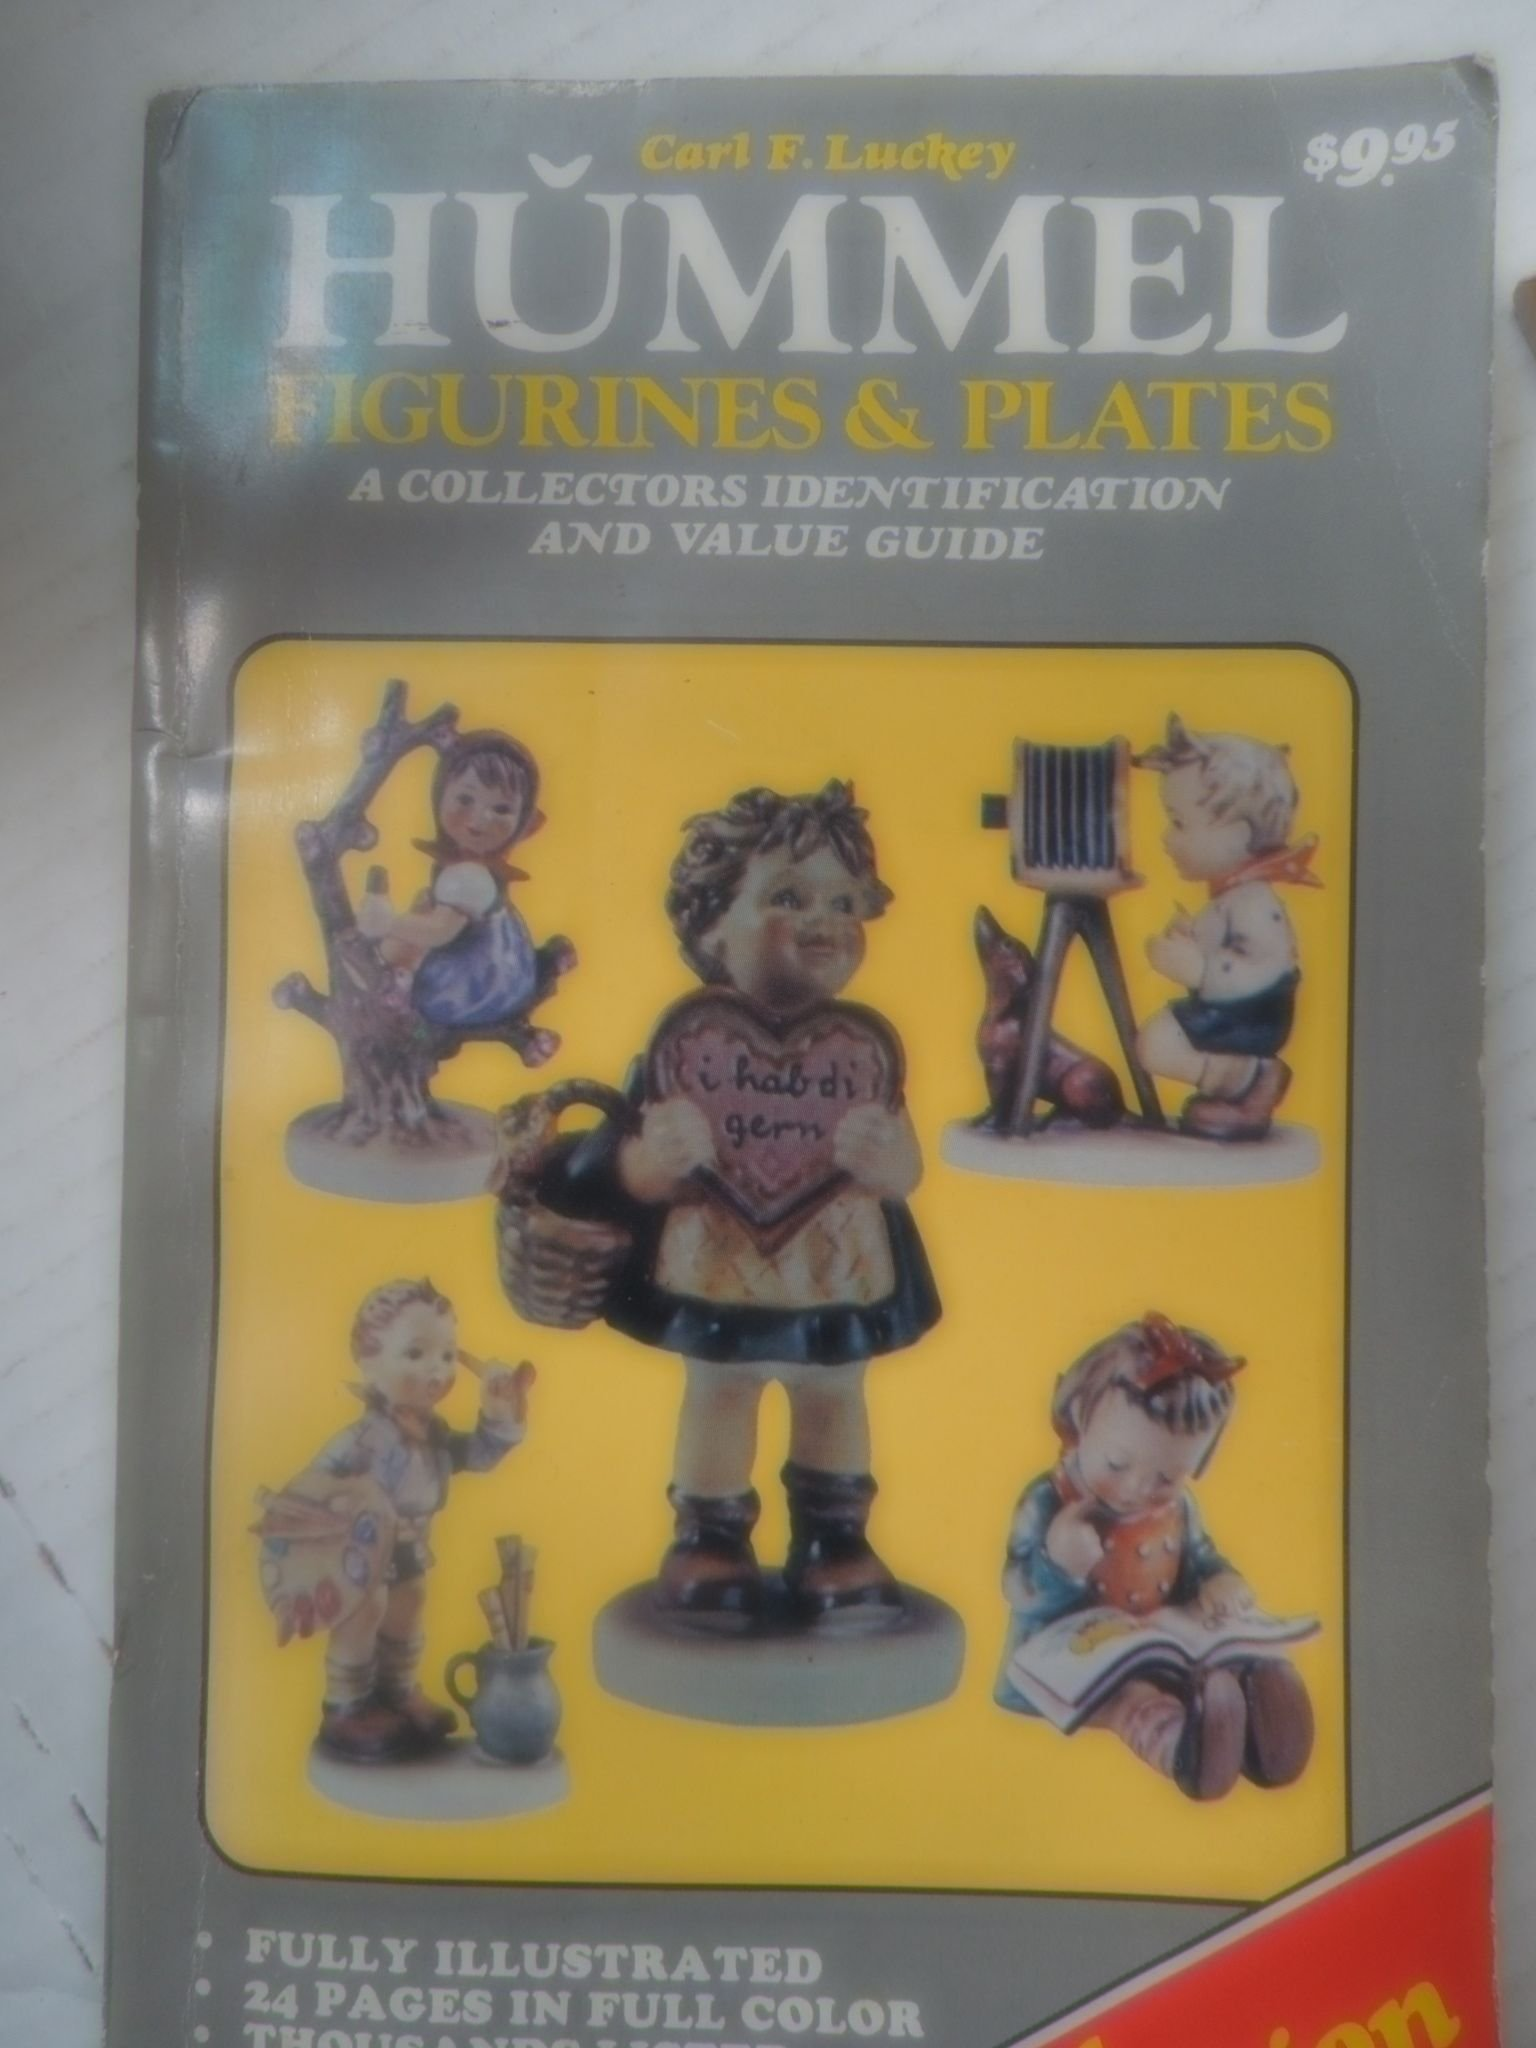 Hummel figurines plates a collectors identification and value guide carl f luckey 9780896890169 amazon com books